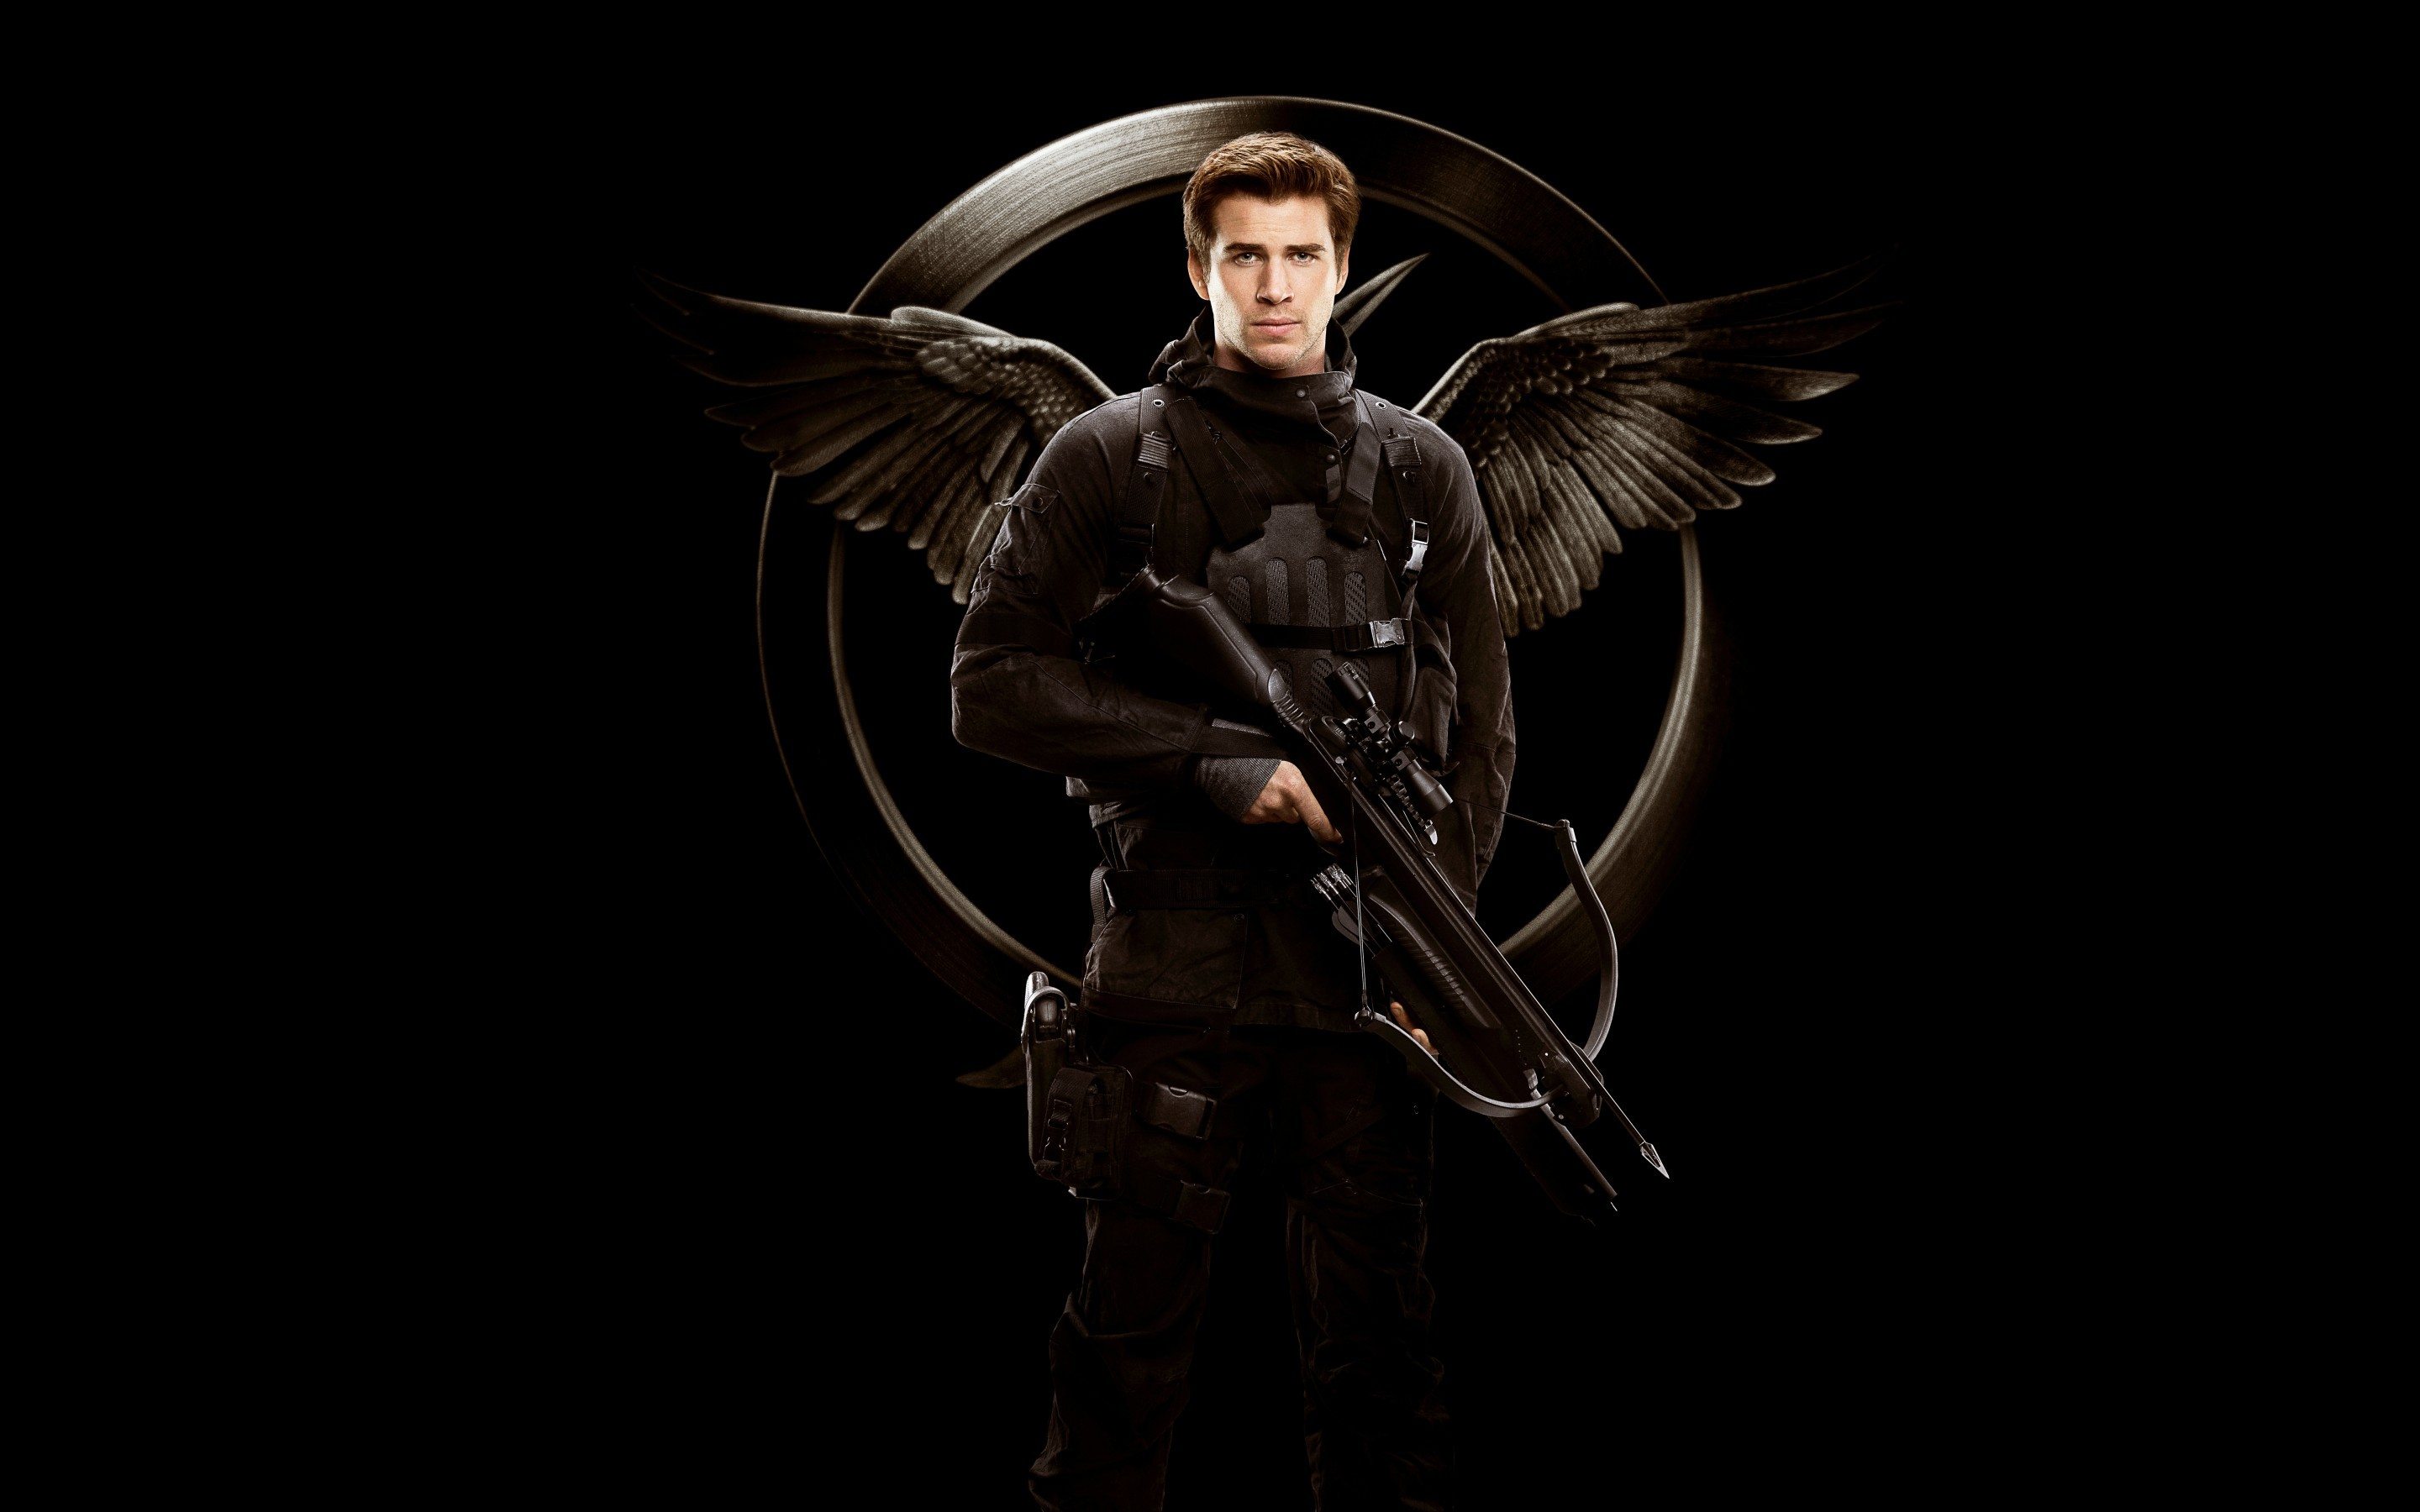 2880x1800 The Hunger Games Liam Hemsworth Gale Hawthorne Mockingjay Wallpaper